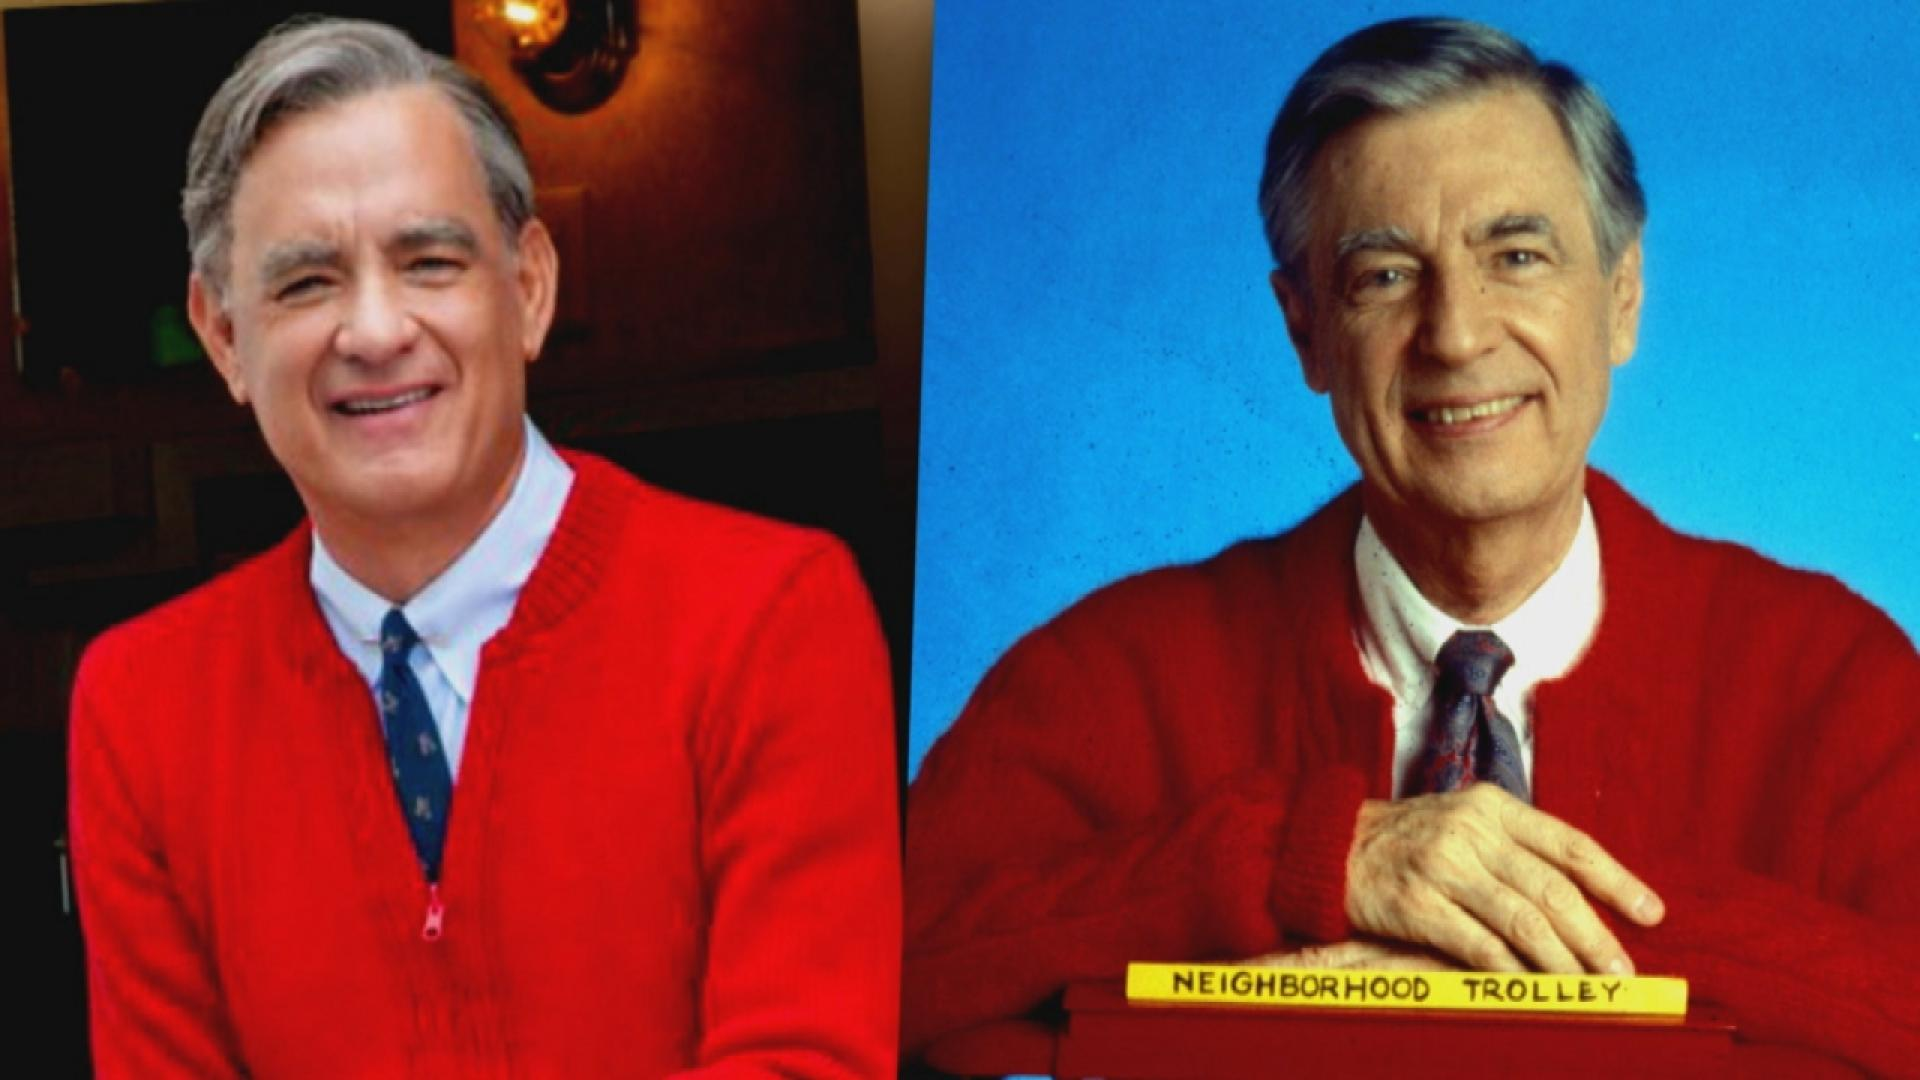 Tom Hanks Takes On Neighborly Role As Fred Rogers In First Photo From New Biopic Inside Edition